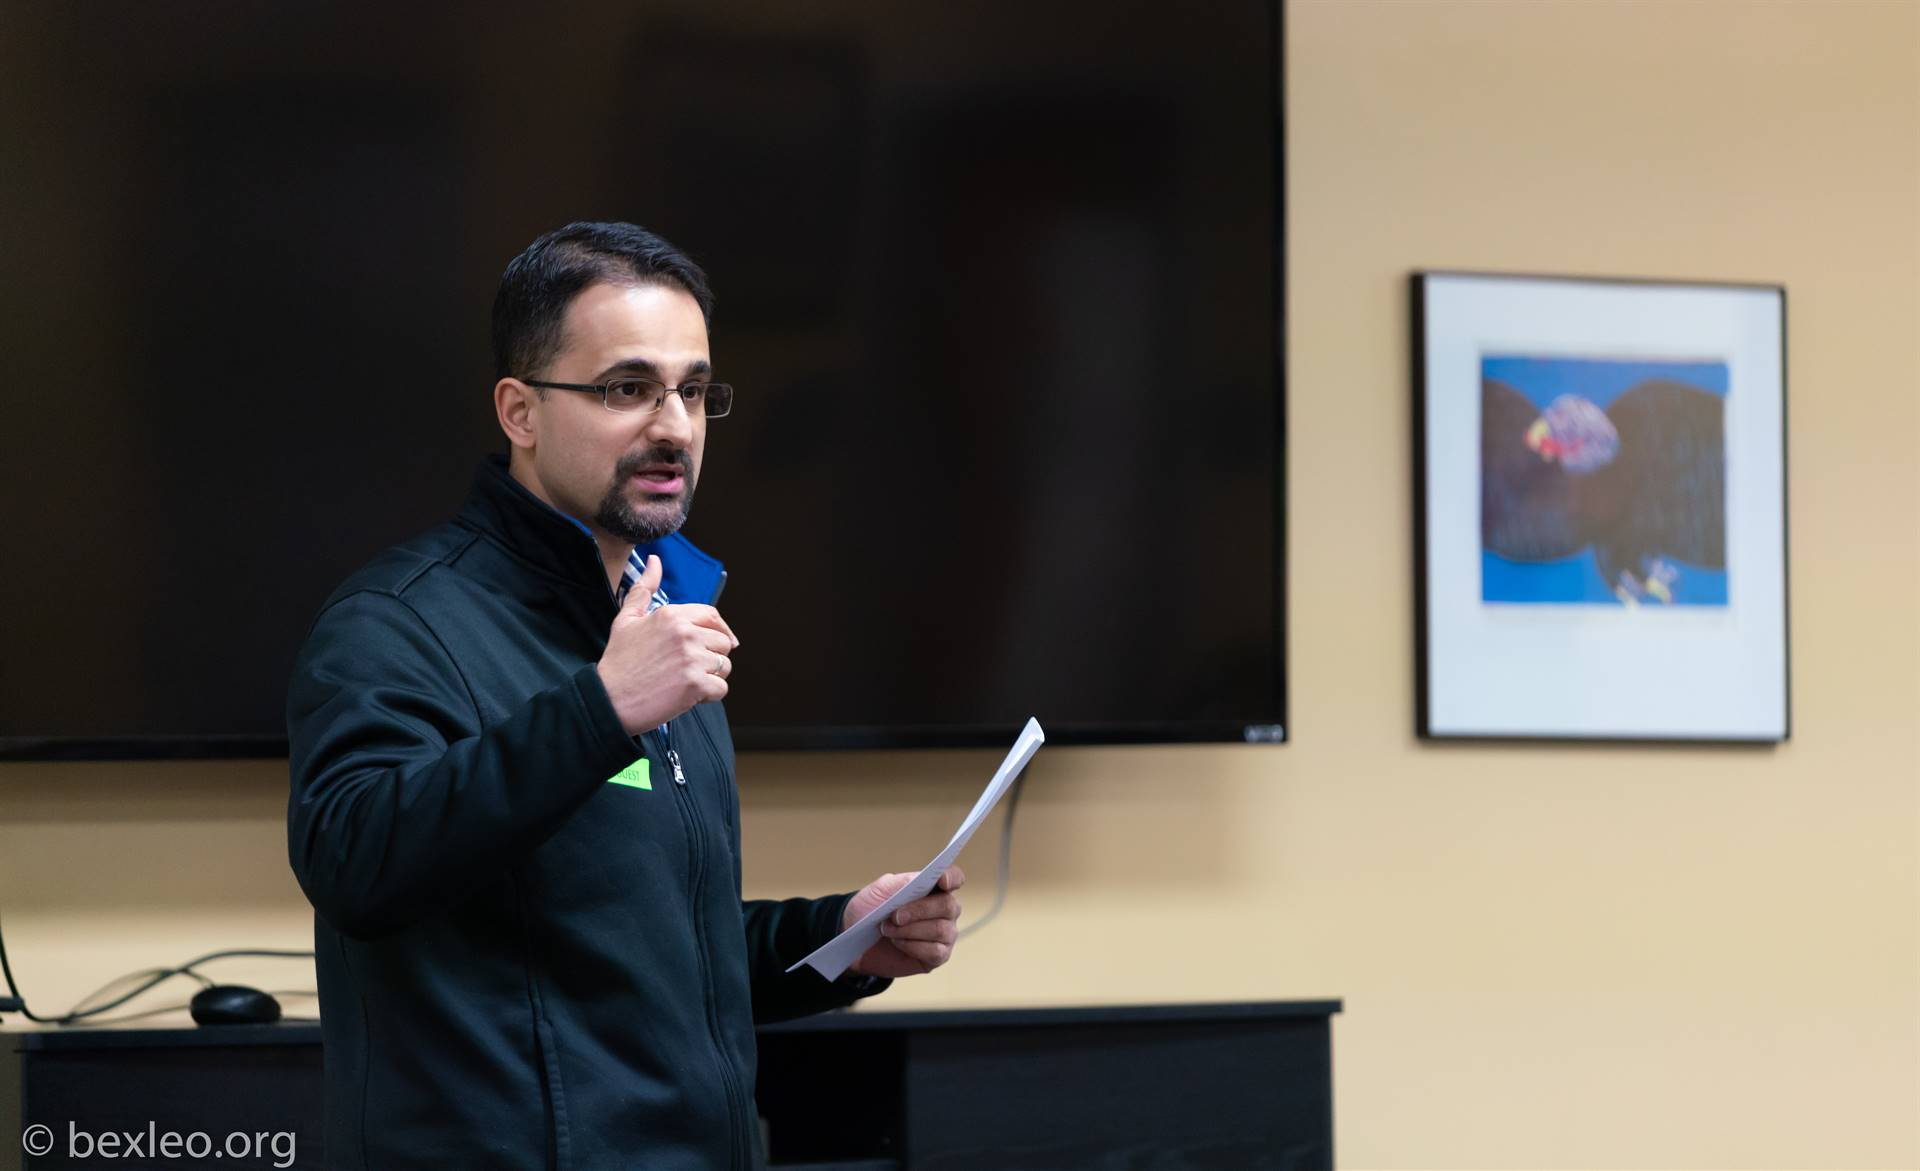 Radiologist and Former Poet Laureate of Ohio Amit Majmudar conducts a Poetry Writing Workshop @ BHS